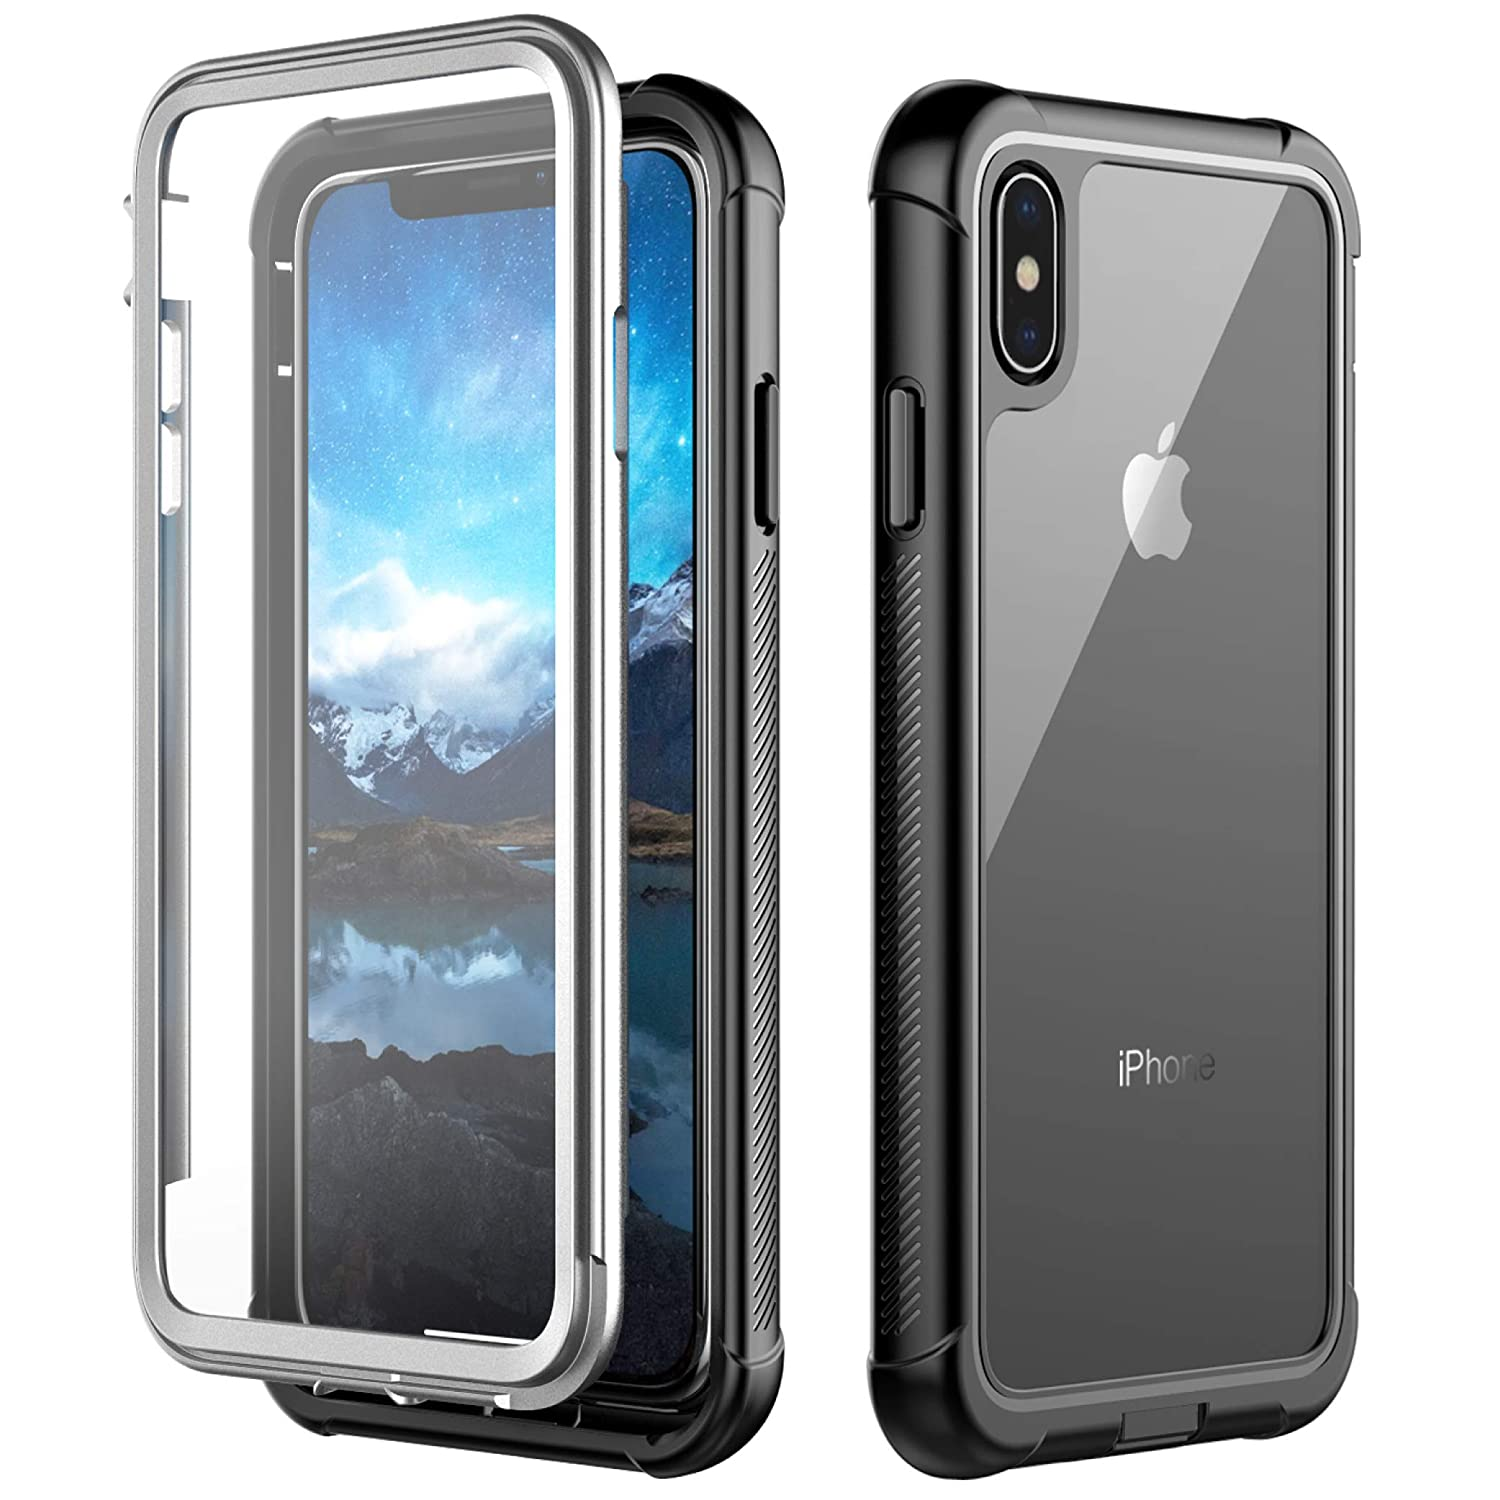 size 40 6fc53 1e0b5 iPhone Xs Max Case, Singdo Built-in Screen Protector Cover 360 Degree  Protection Rugged Clear Bumper Case Compatible with iPhone Xs Max 2018  Released ...